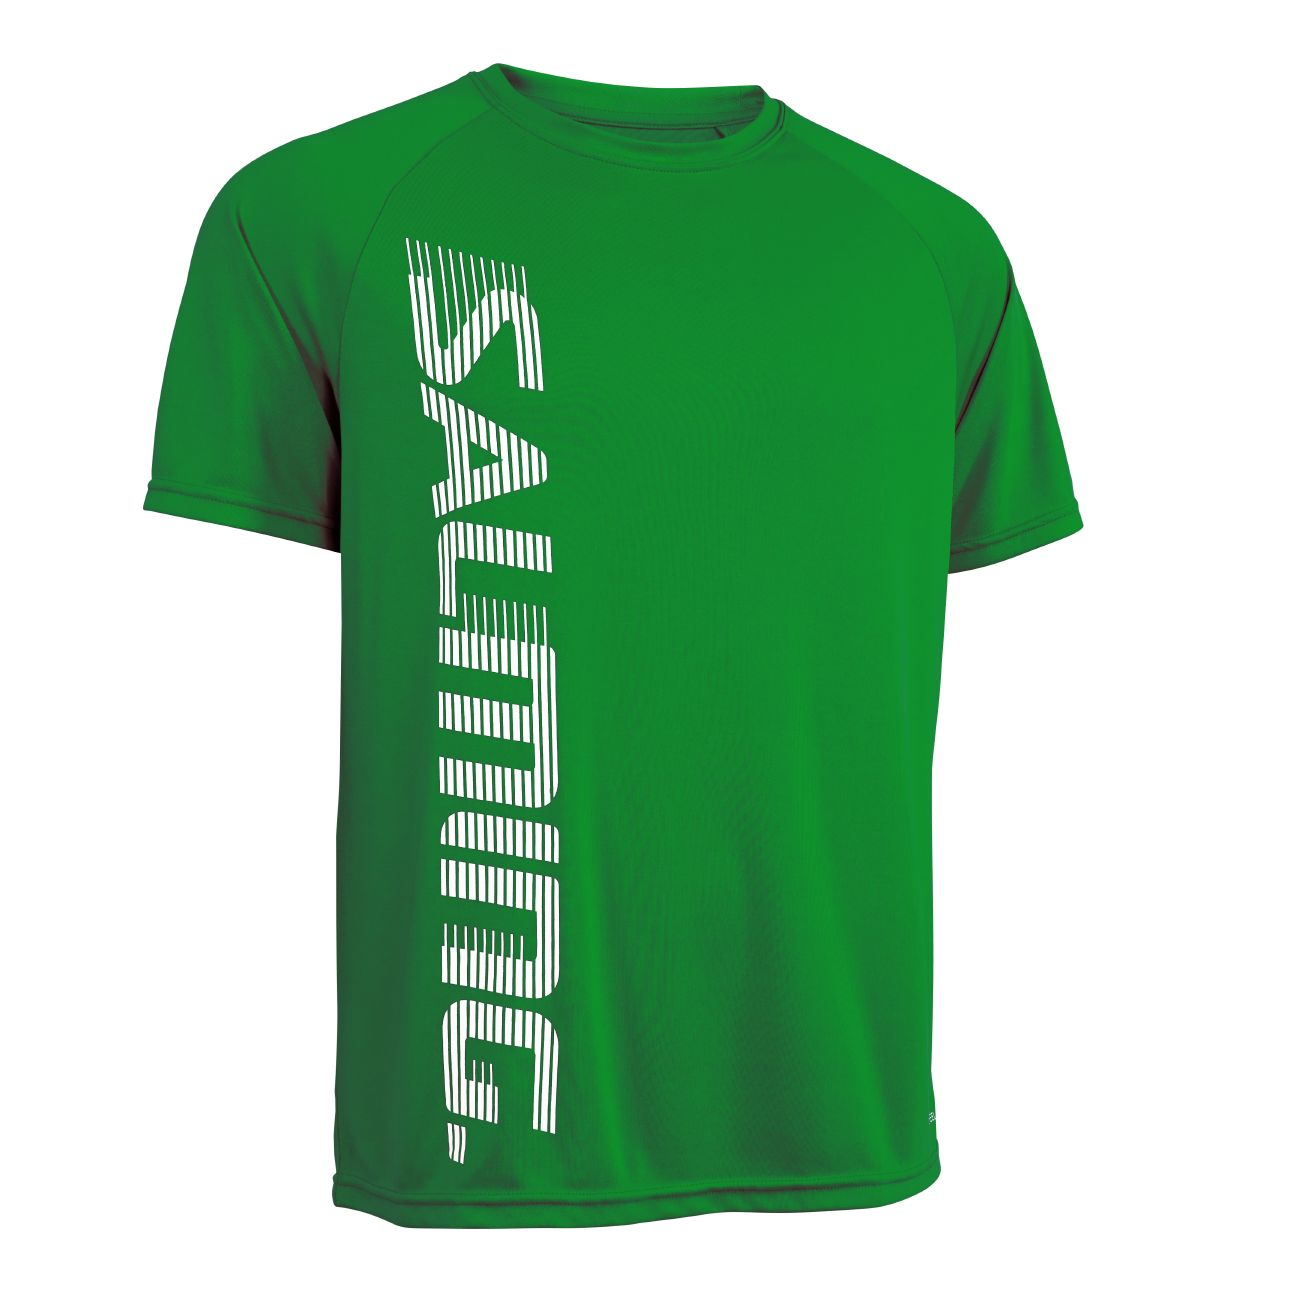 Salming Training Tee 2.0 Červená, 128